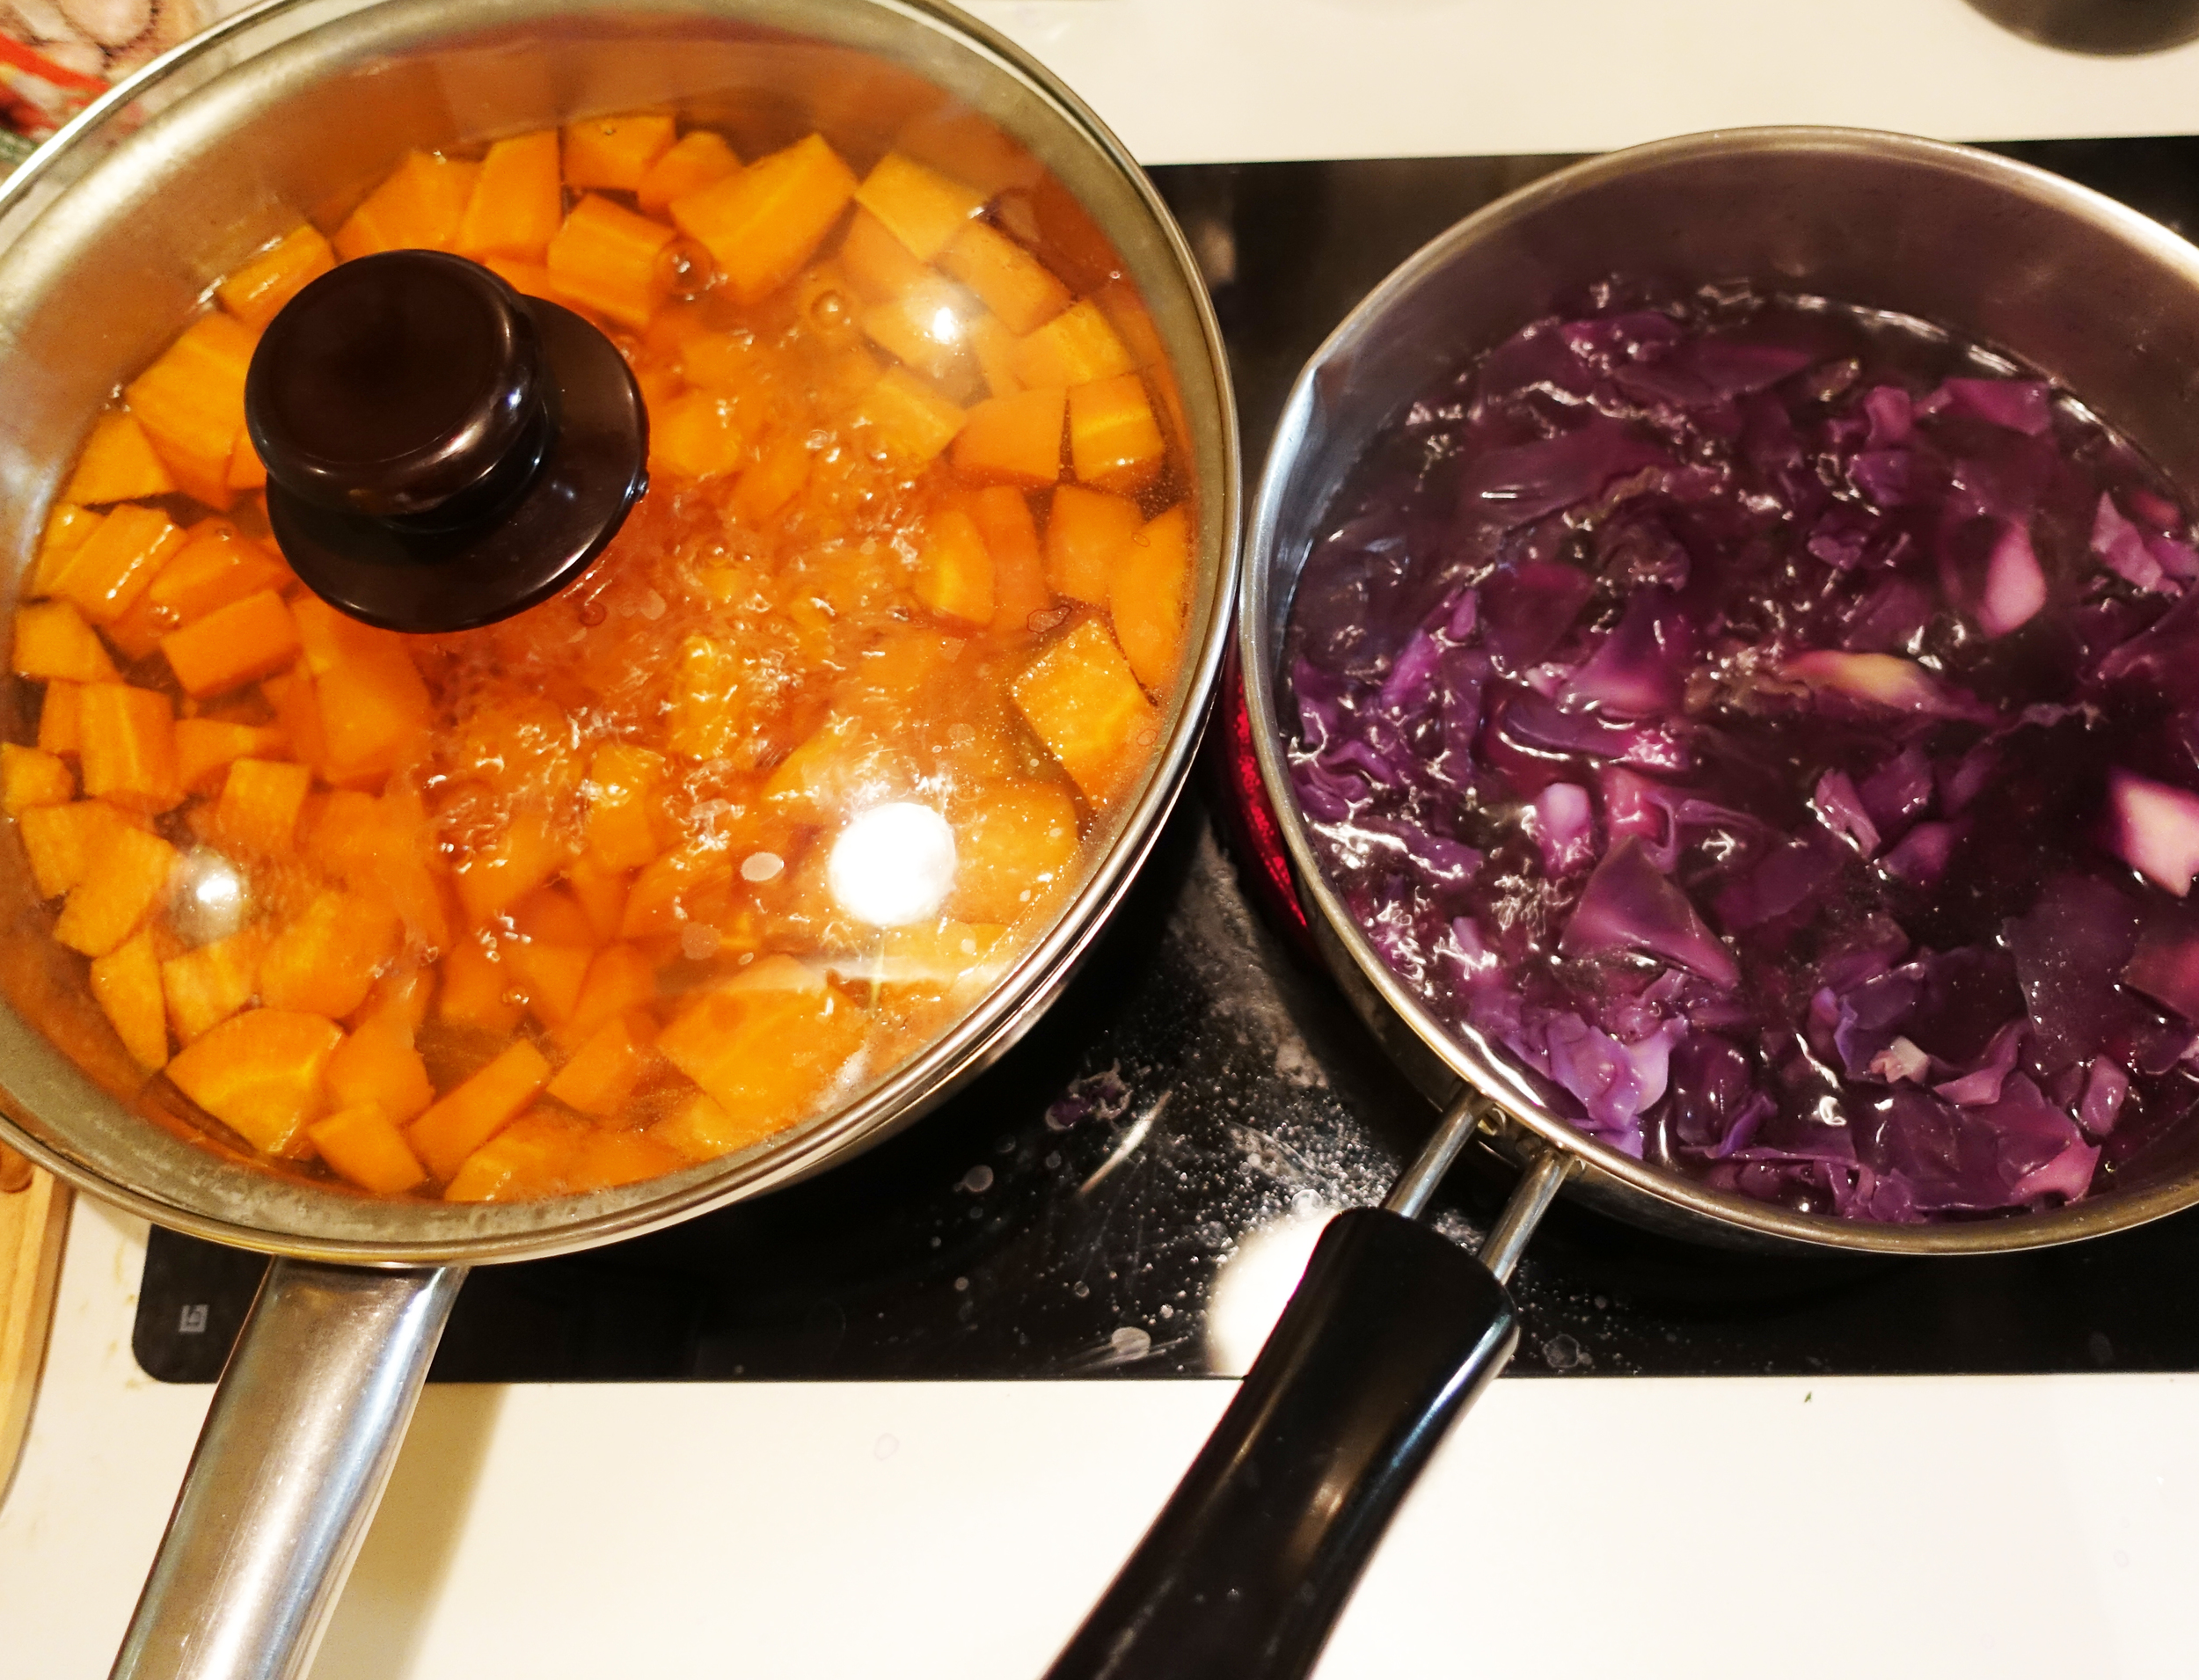 Cook the vegetables and extract color out of them